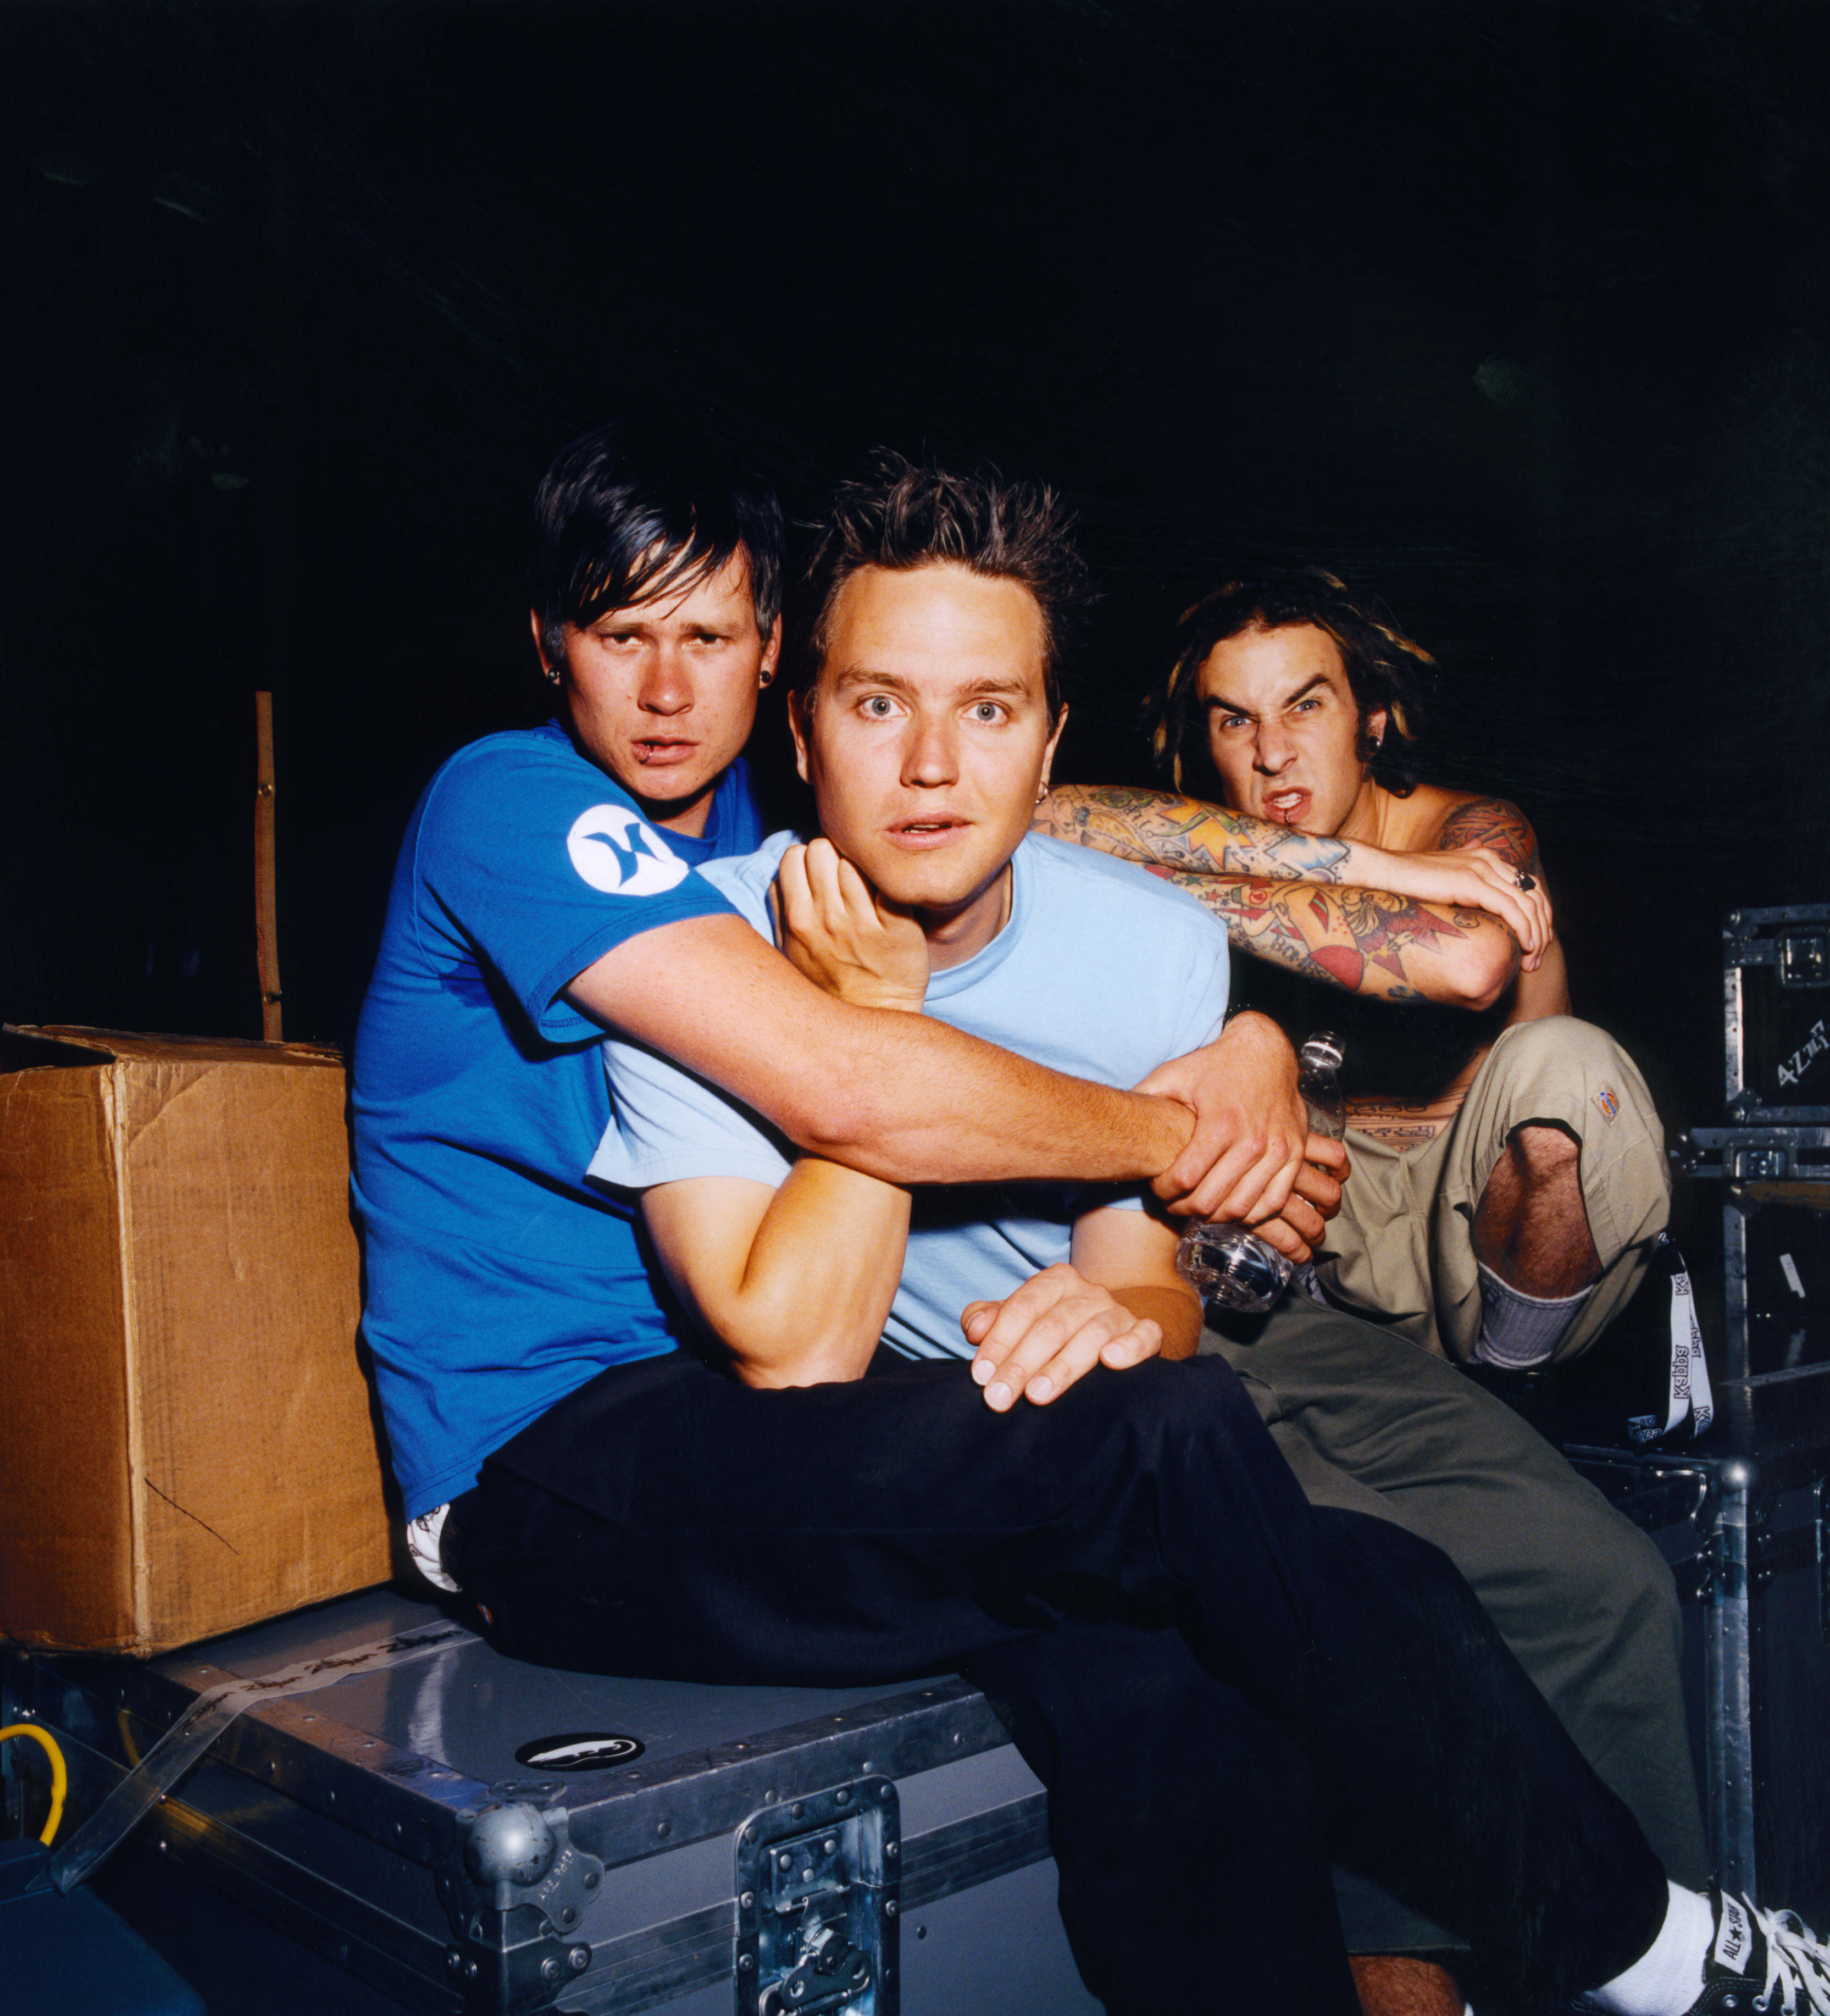 blink 182 all the small things mp3 free download